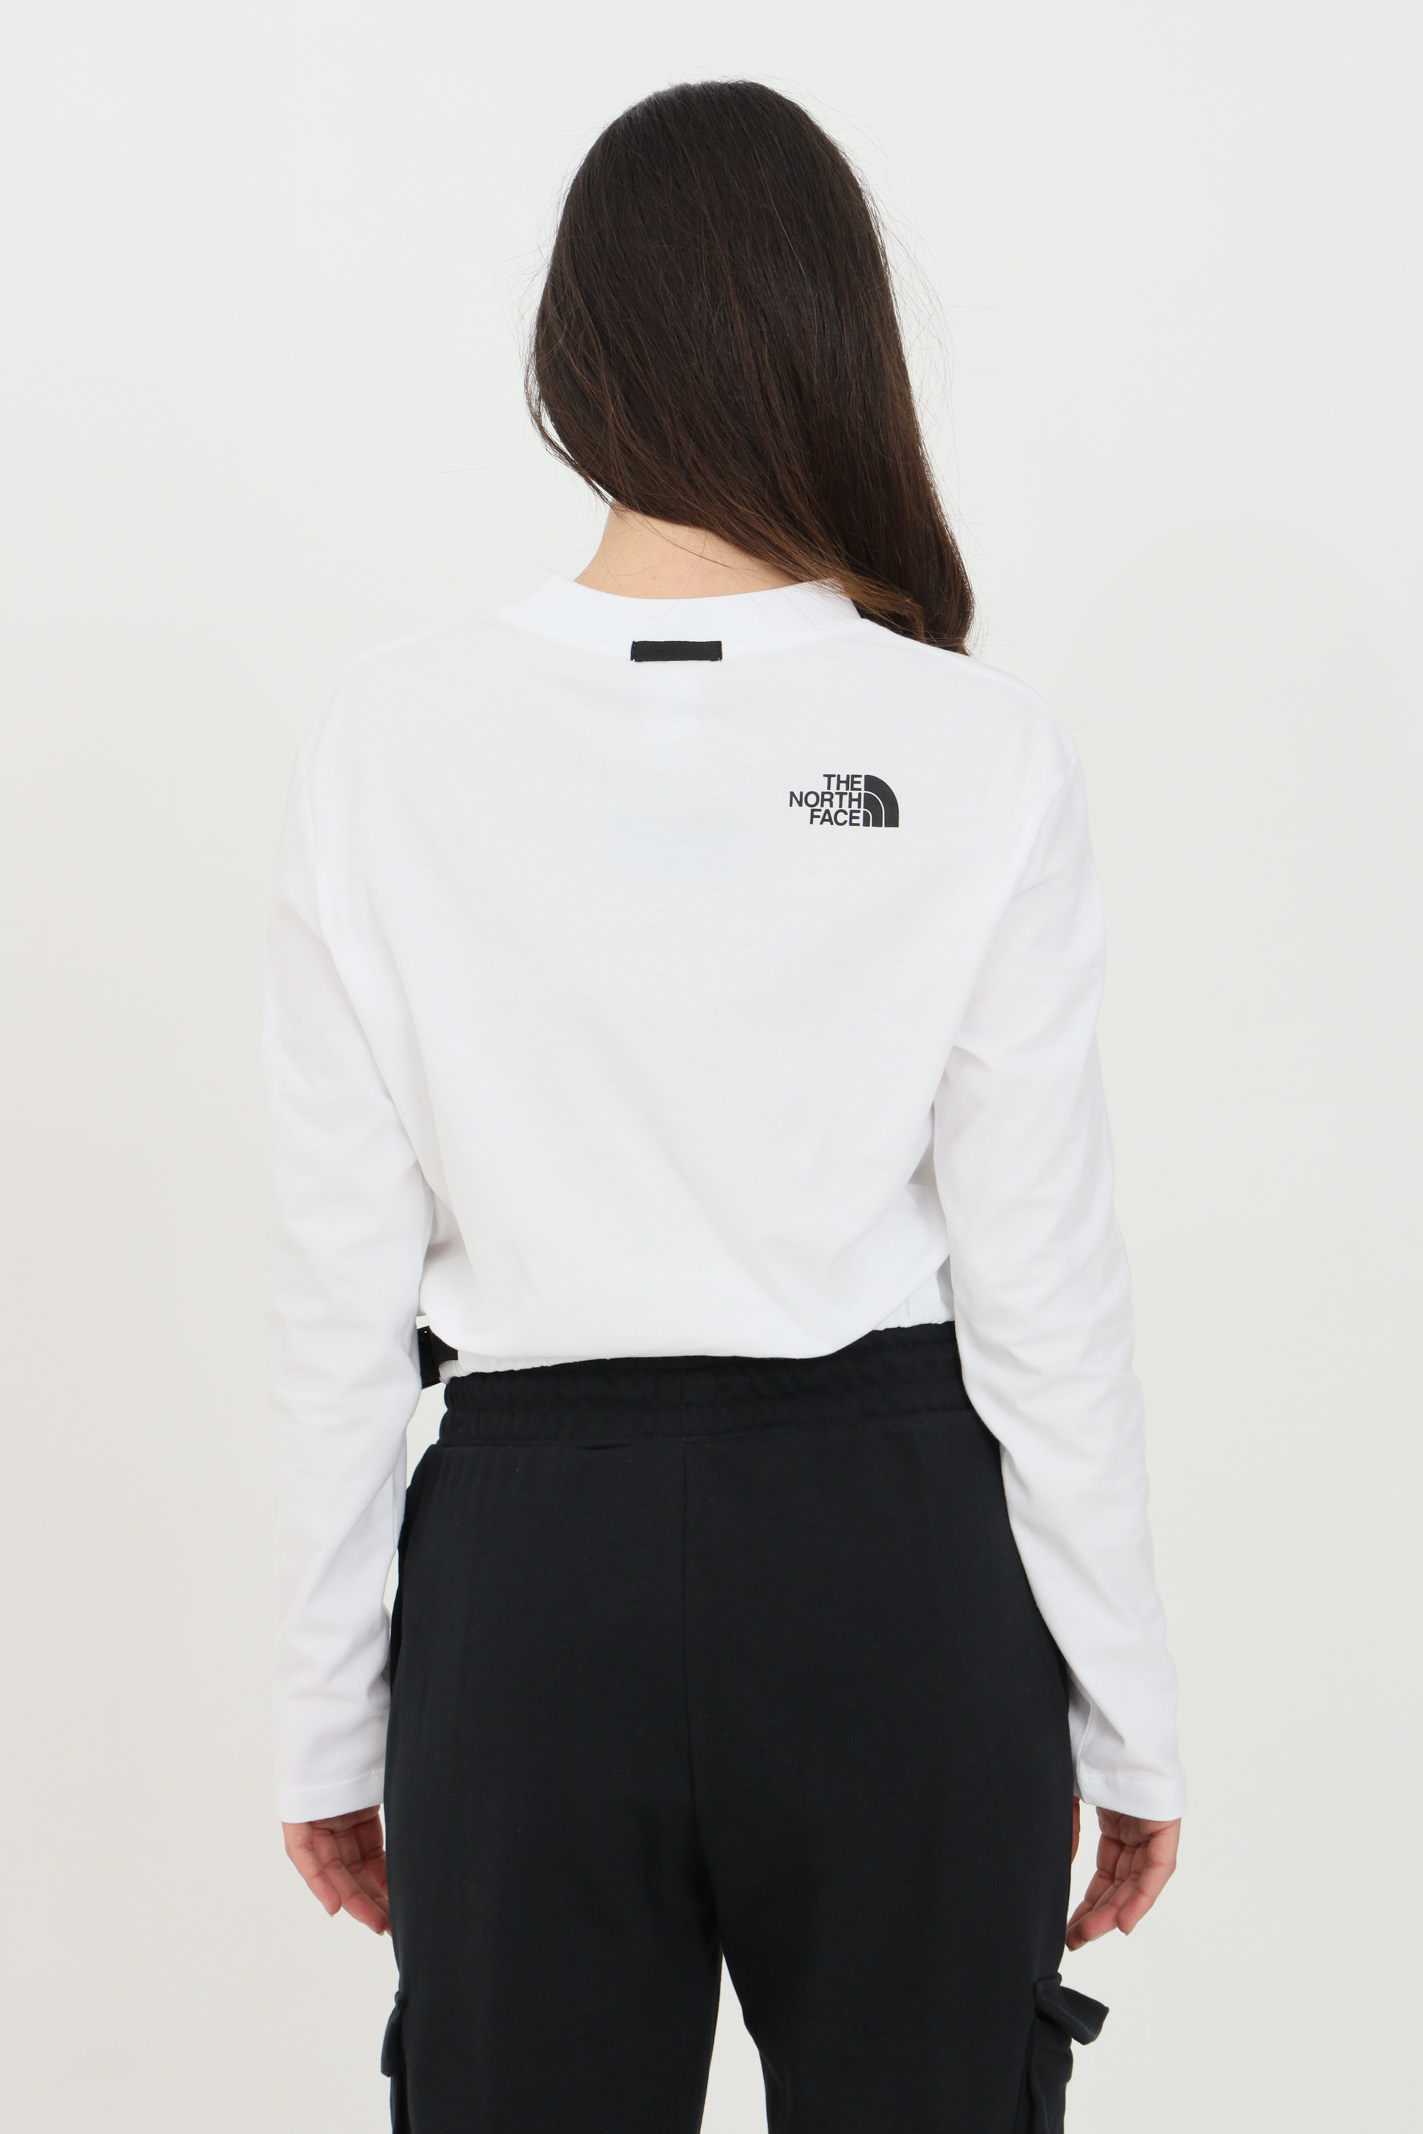 Felpa donna bianco the north face girocollo in tinta unita con patch logo frontale, taglio corto e coulisse sul fondo THE NORTH FACE | Felpe | NF0A557SFN41FN41